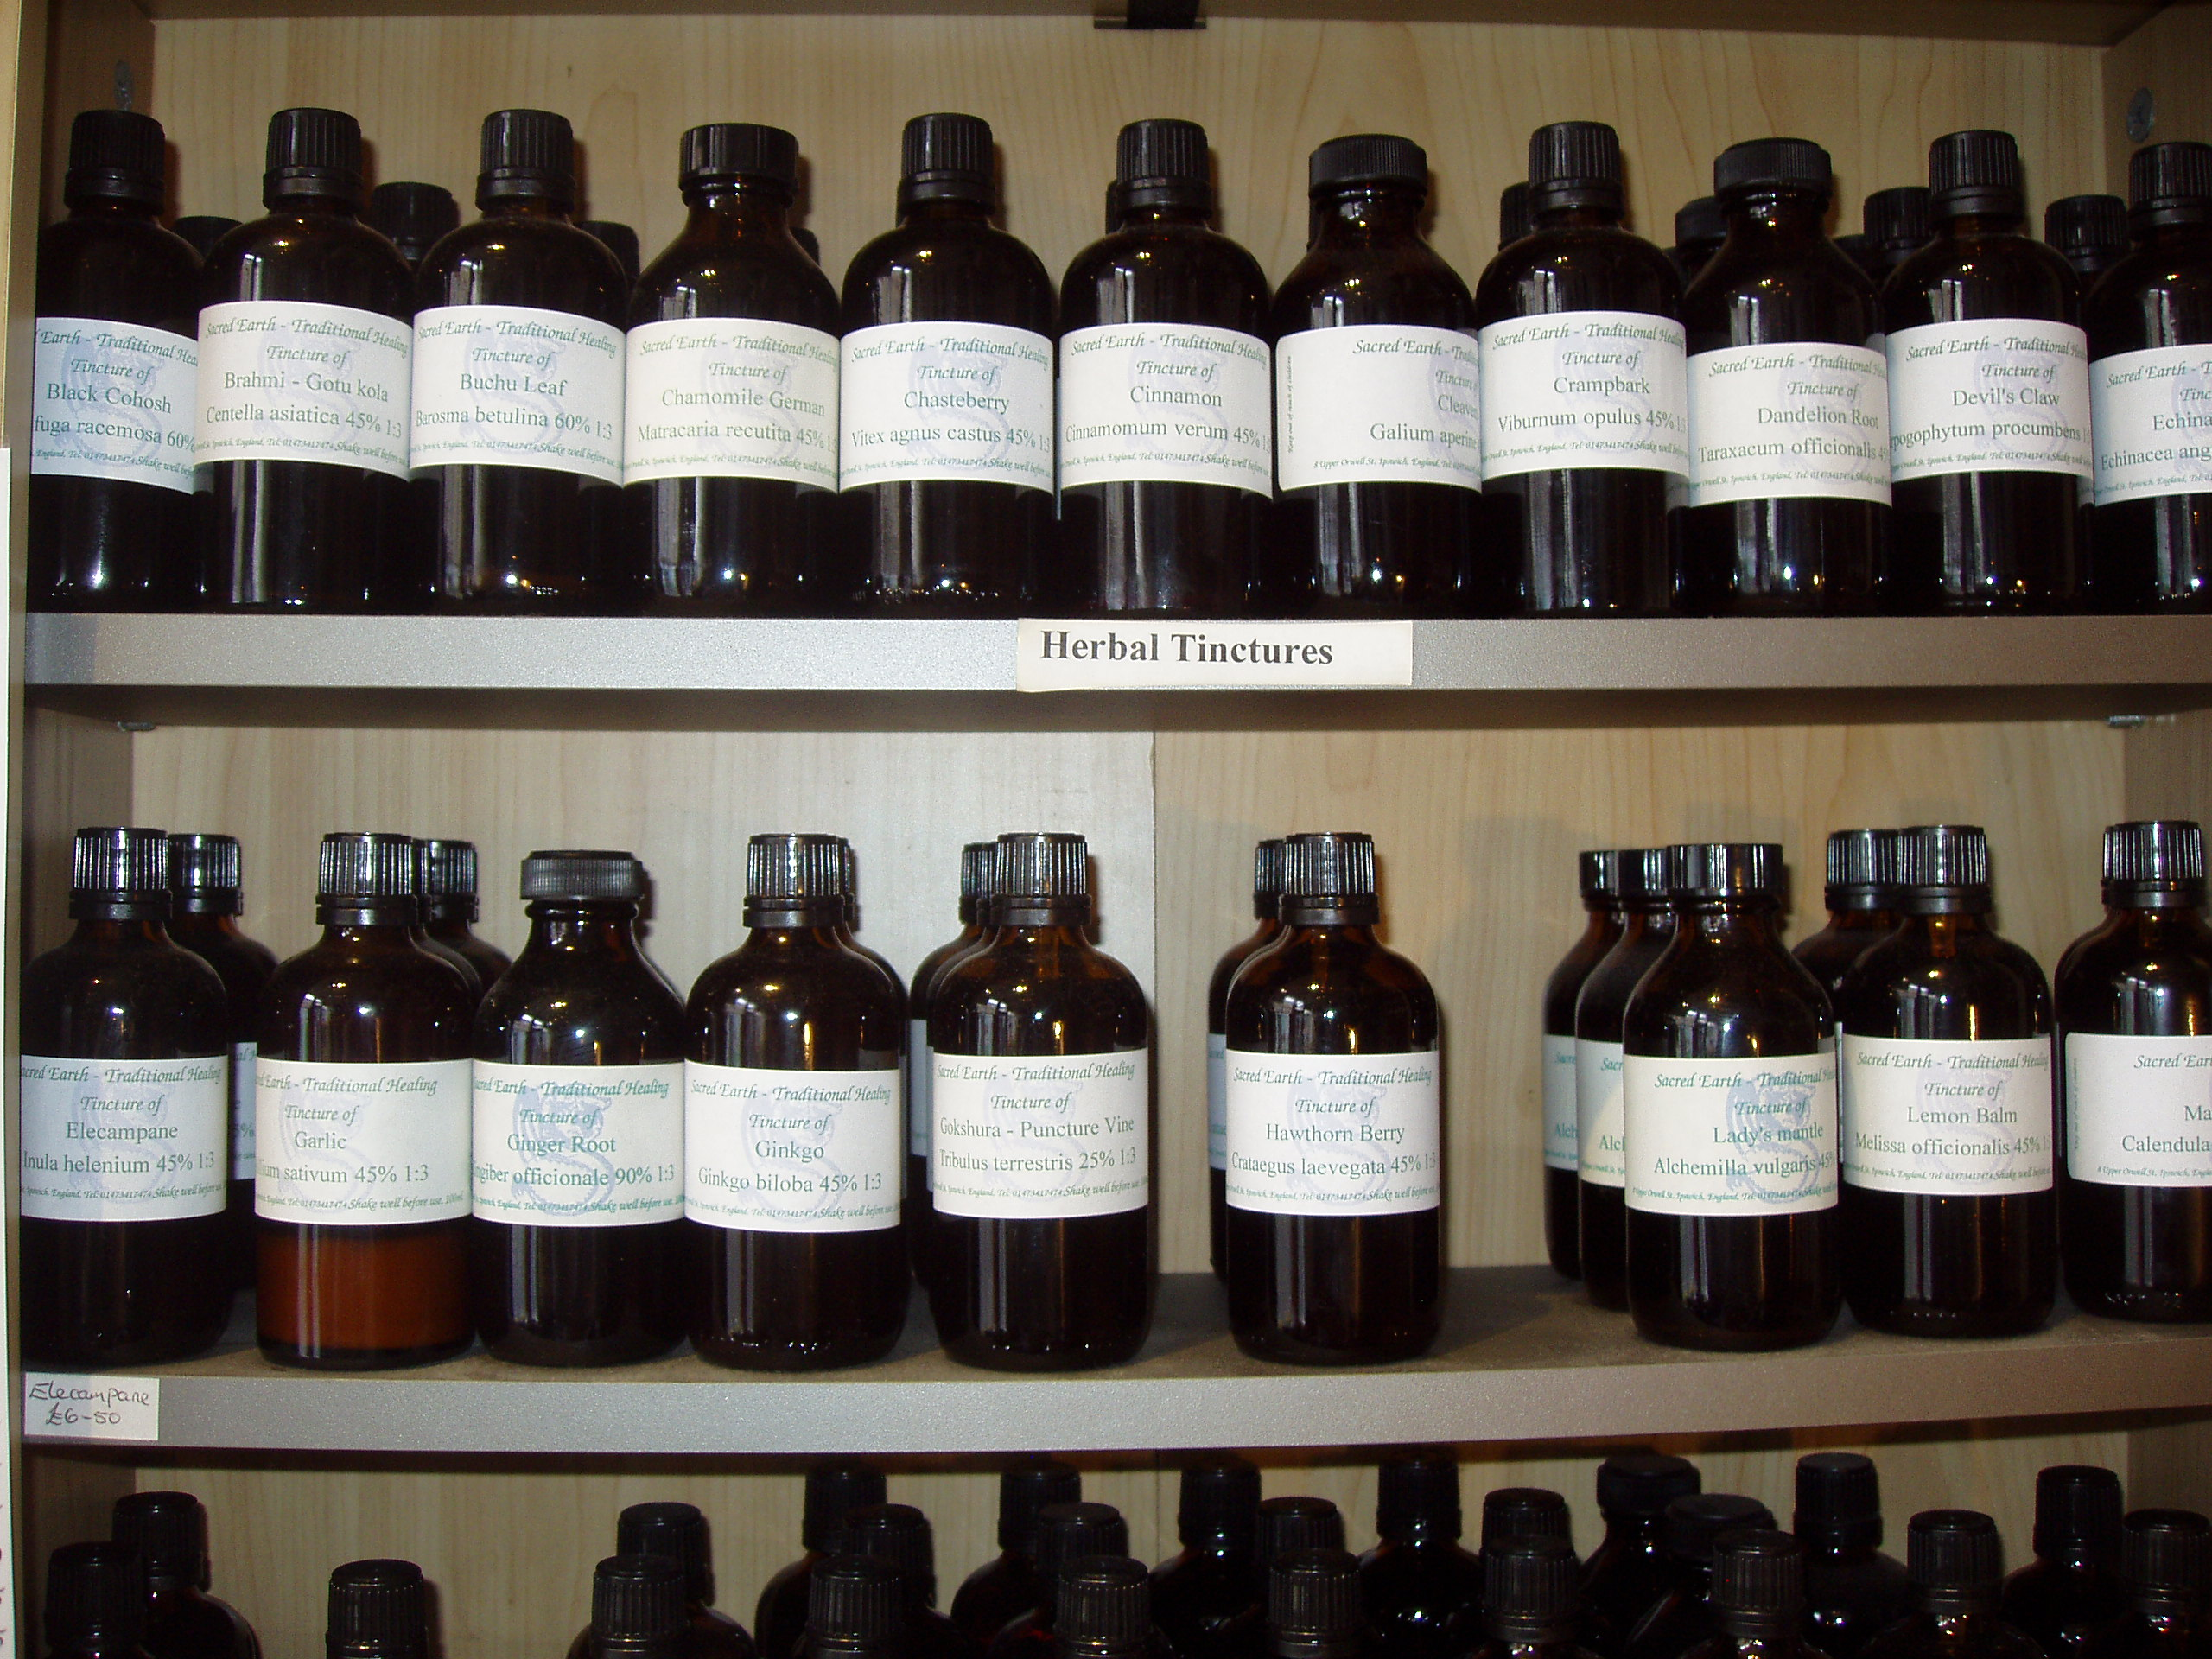 Herbal Tinctures - Horehound herb (White).